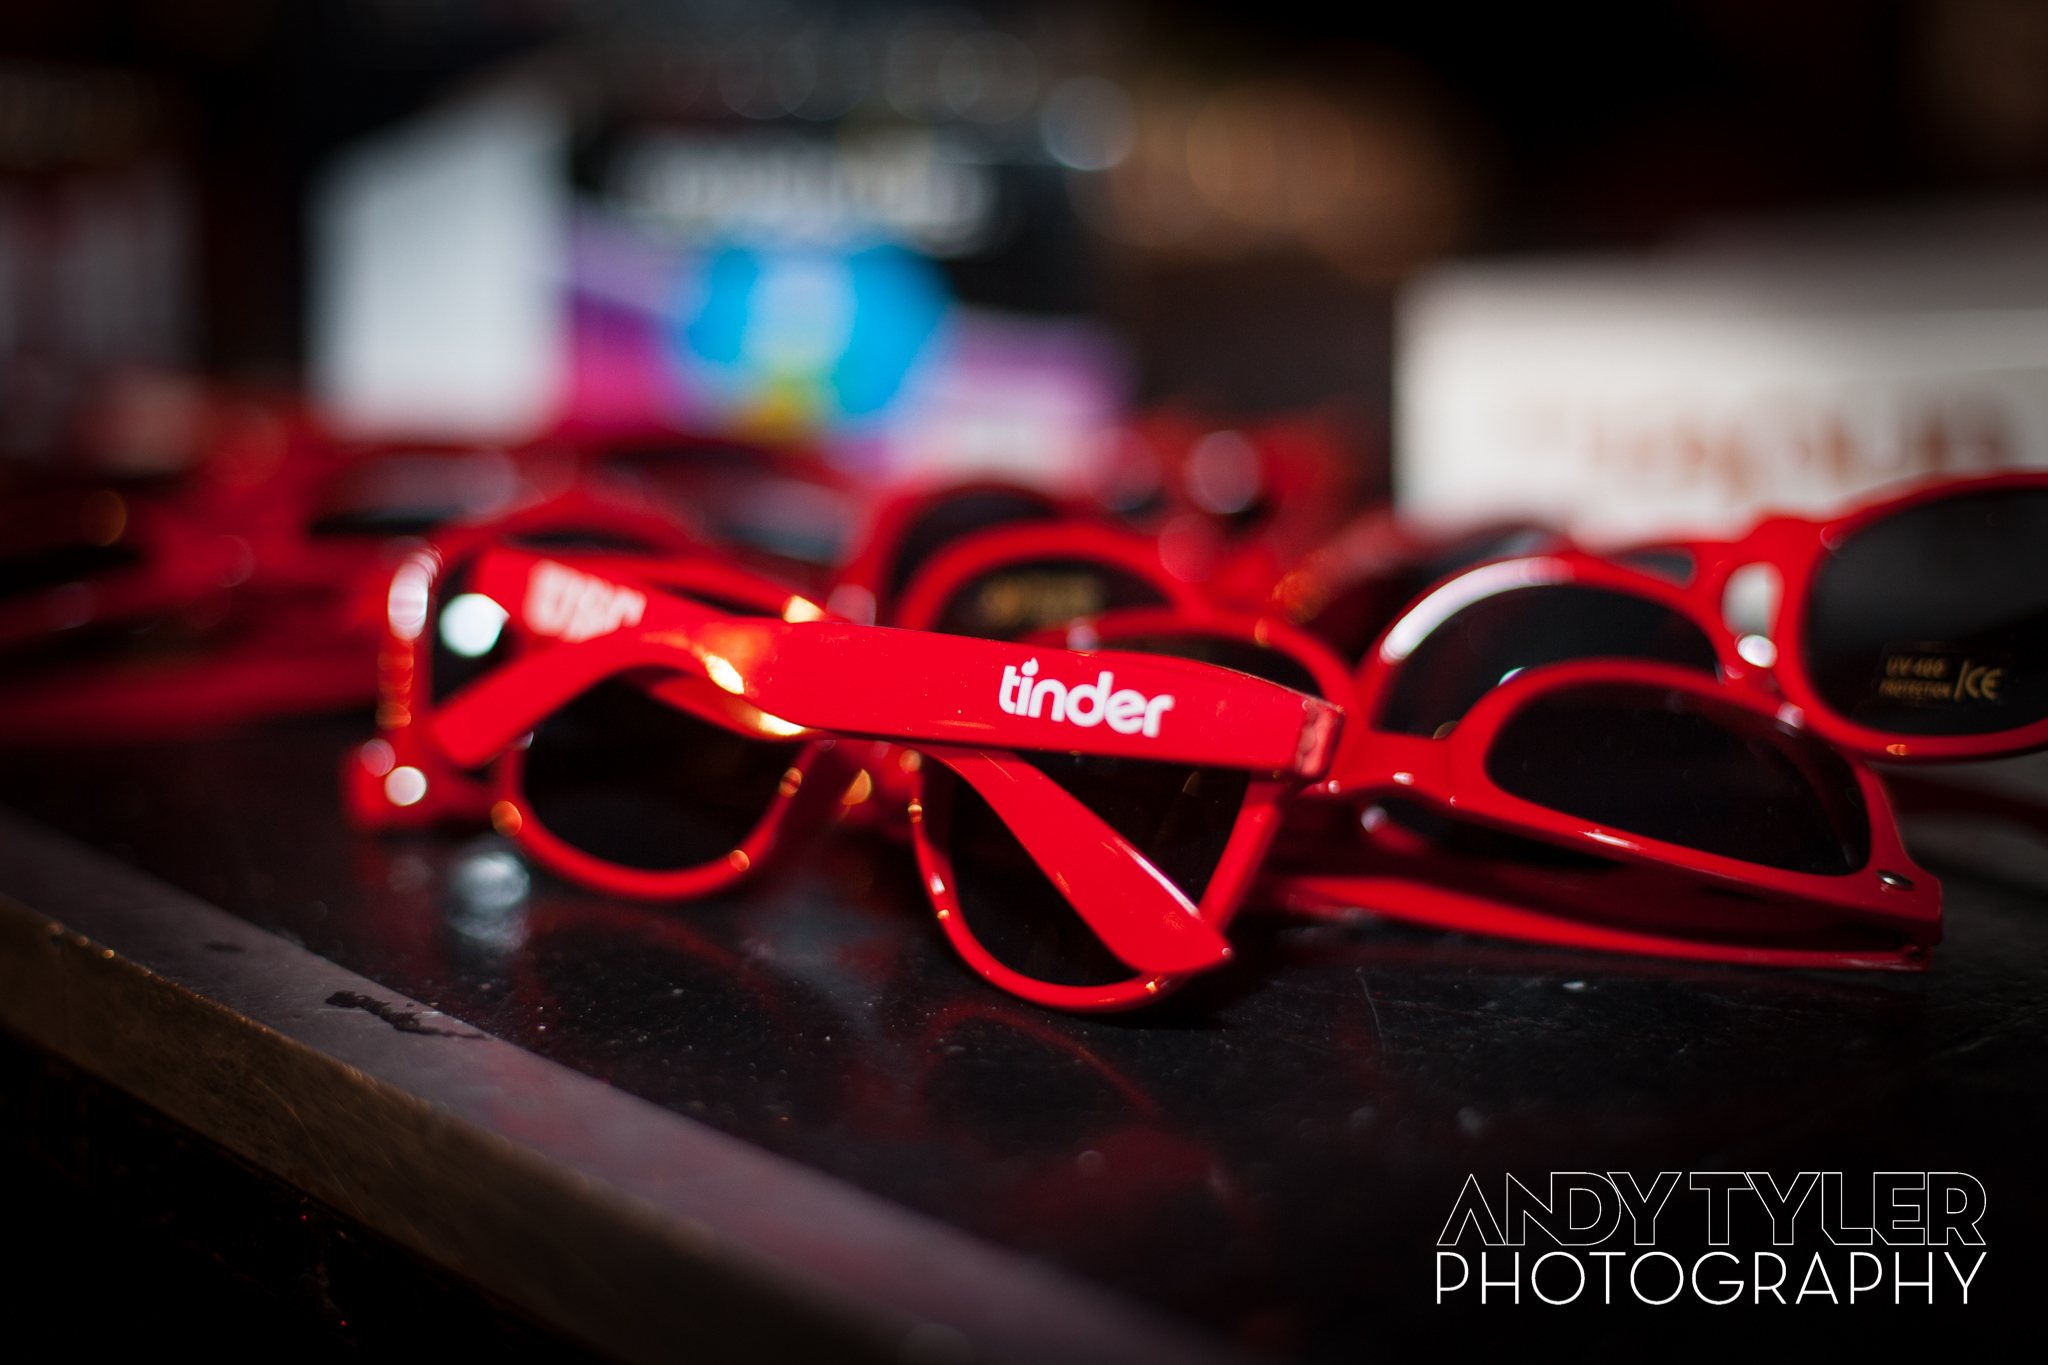 Tinder UK Launch Party-1670.jpg